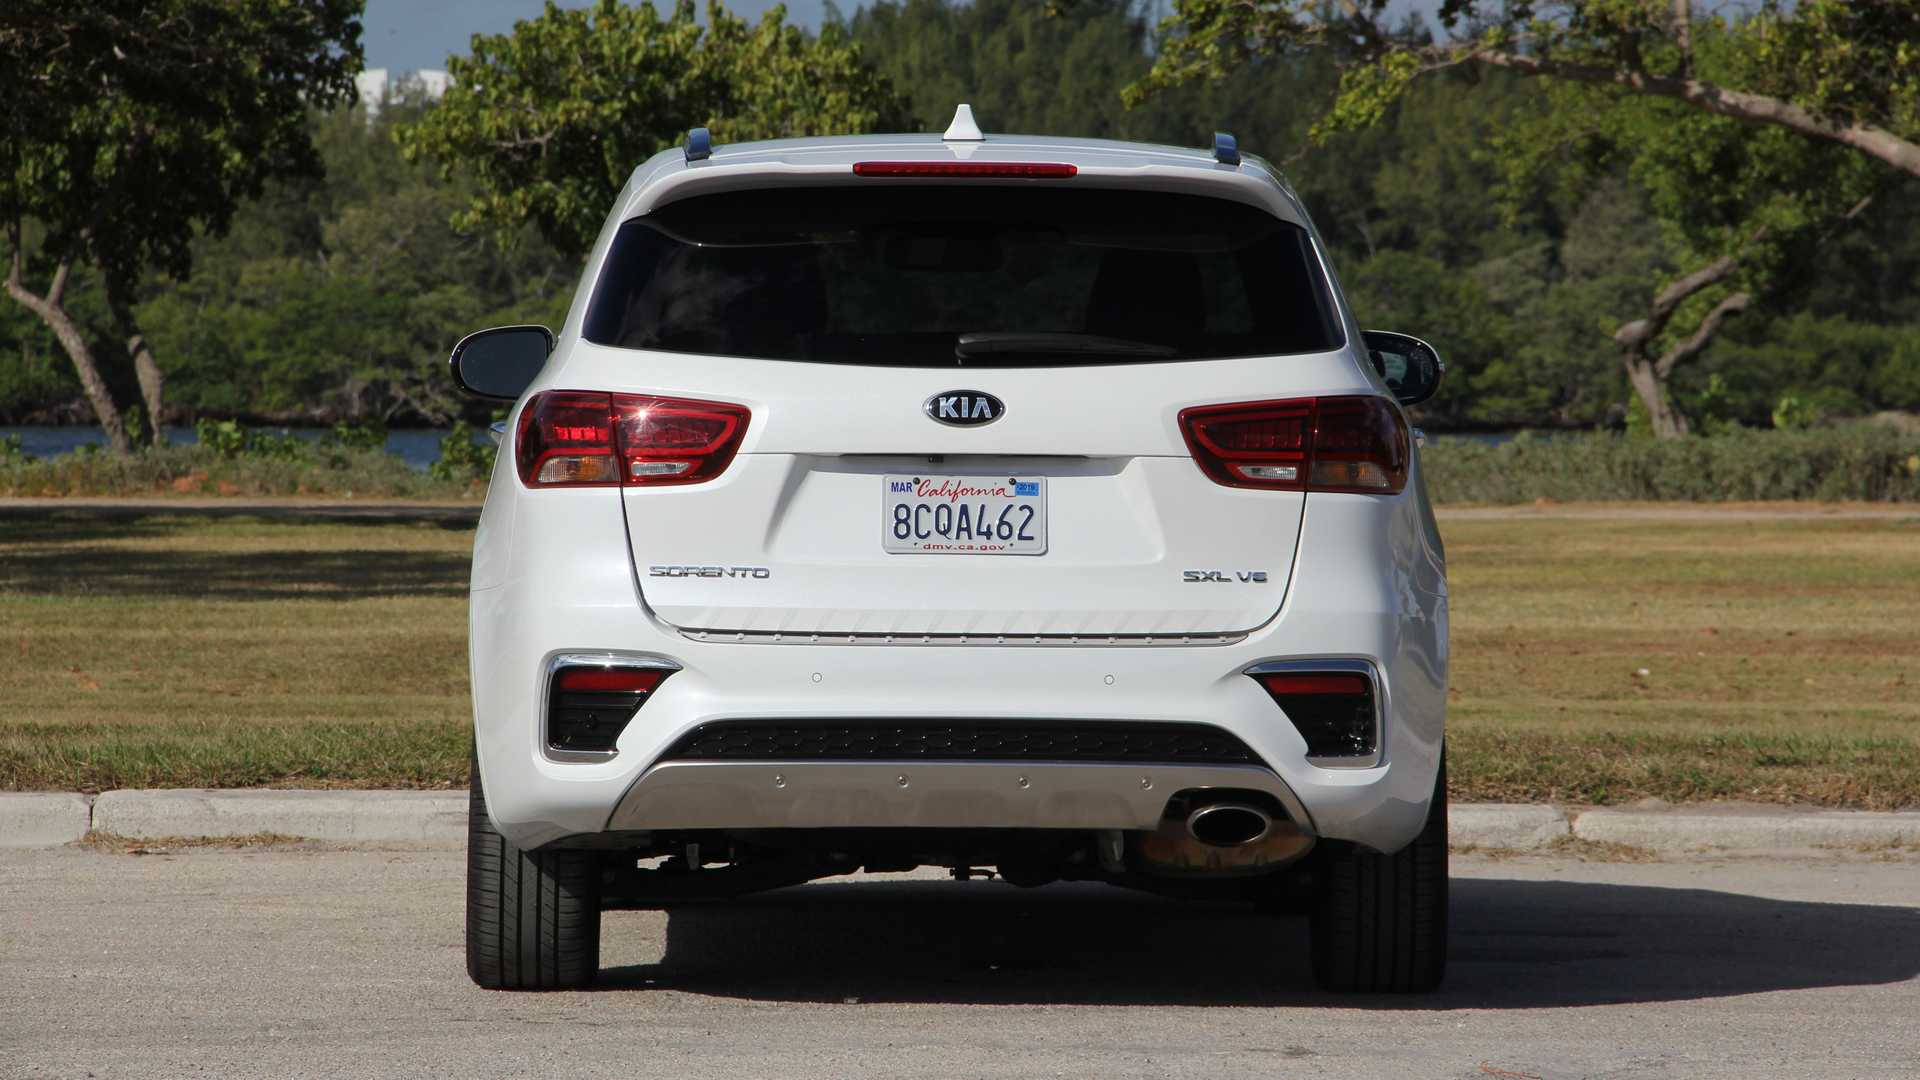 87 The Kia Sorento 2019 White Configurations